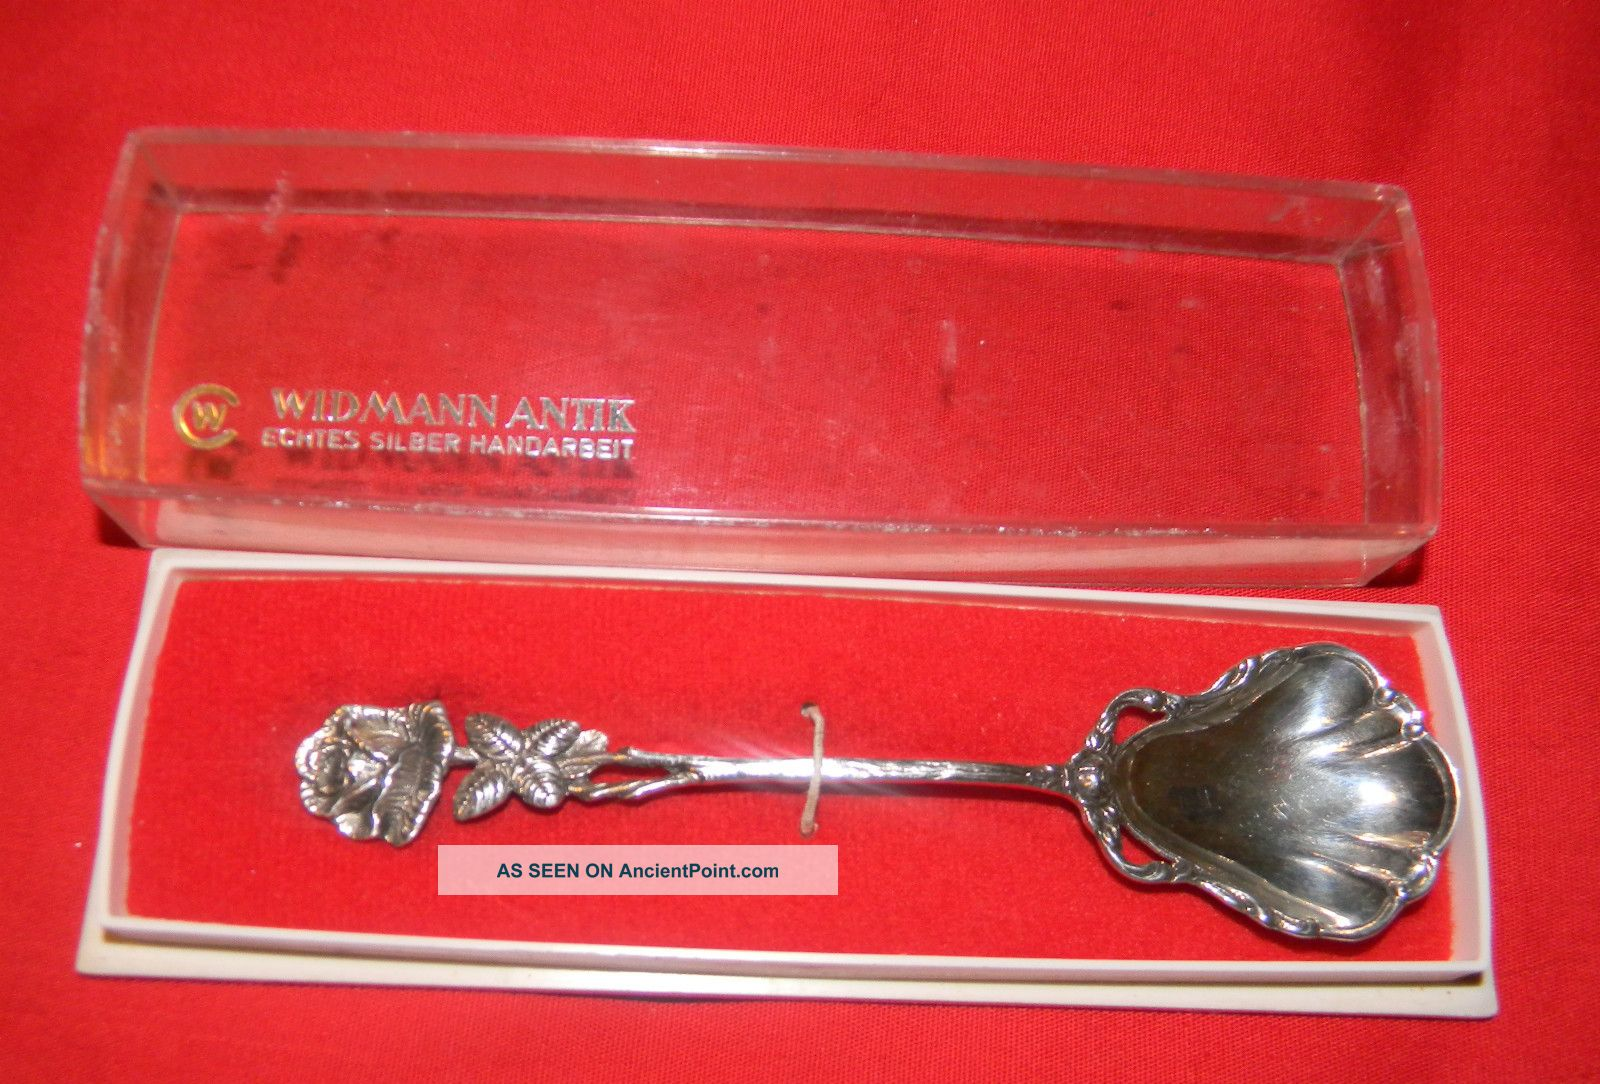 Antique Widmann Antik Echtes Silber Handarbeit 835 German Svr.  Rose Handle Spoon Germany photo